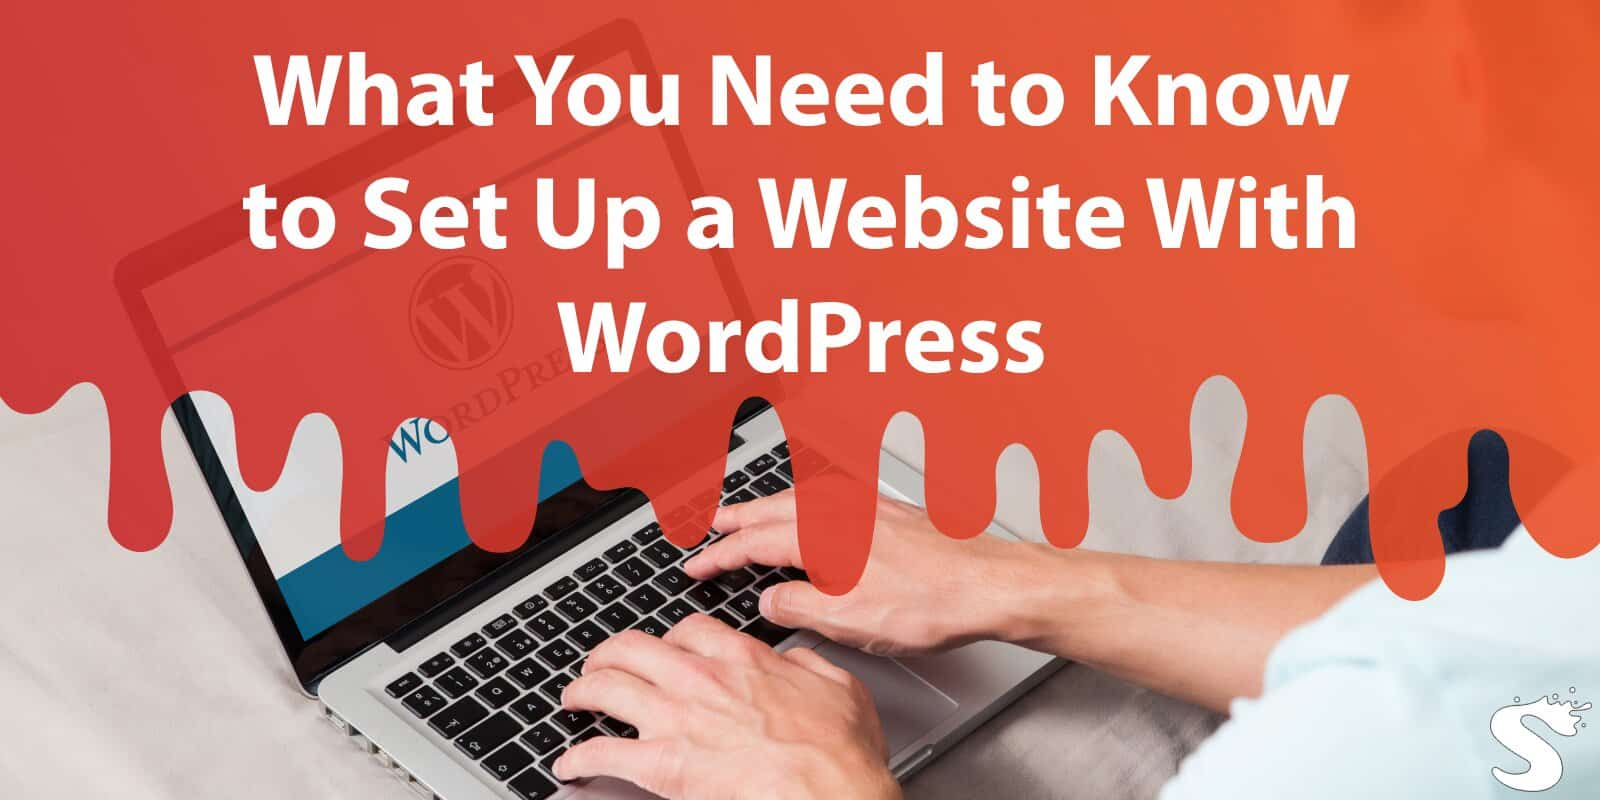 What You Need to Know to Set Up a Website With WordPress